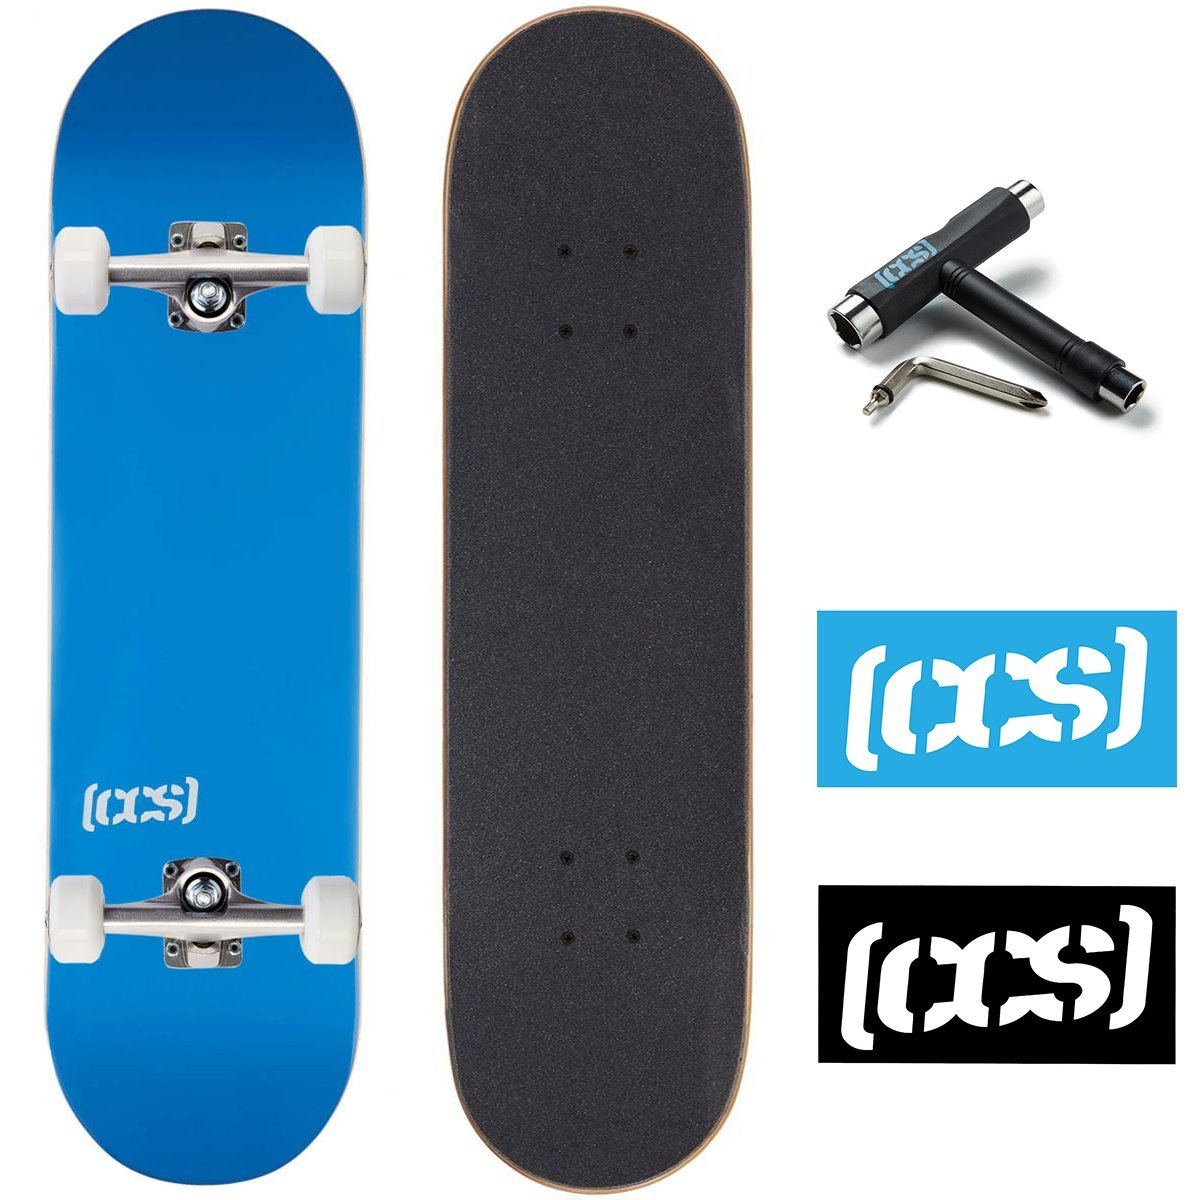 CCS Skateboard Complete - Color Logo and Natural Wood - Fully Assembled - Includes Skateboard Tool and Stickers (Blue, 7.0'' (Mini/Kid's Size))